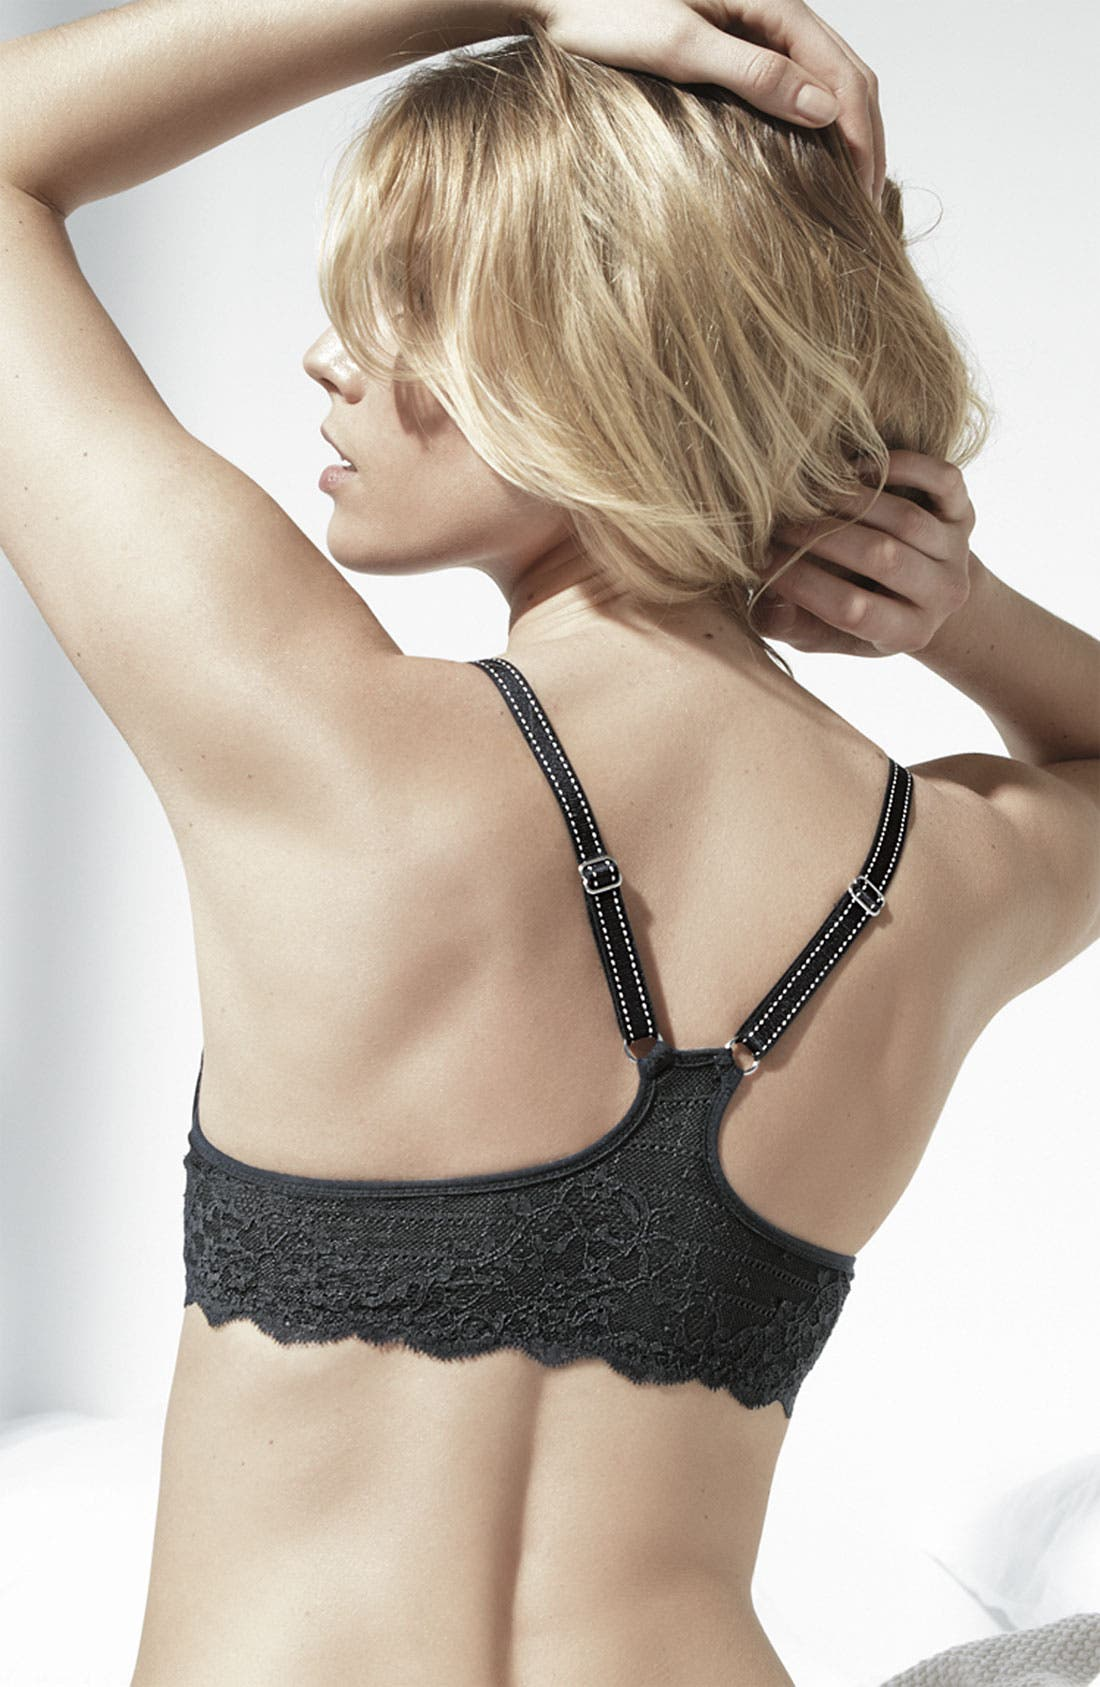 Alternate Image 2  - Chantelle Intimates 'Rive Gauche' Spacer Foam Racerback Bra